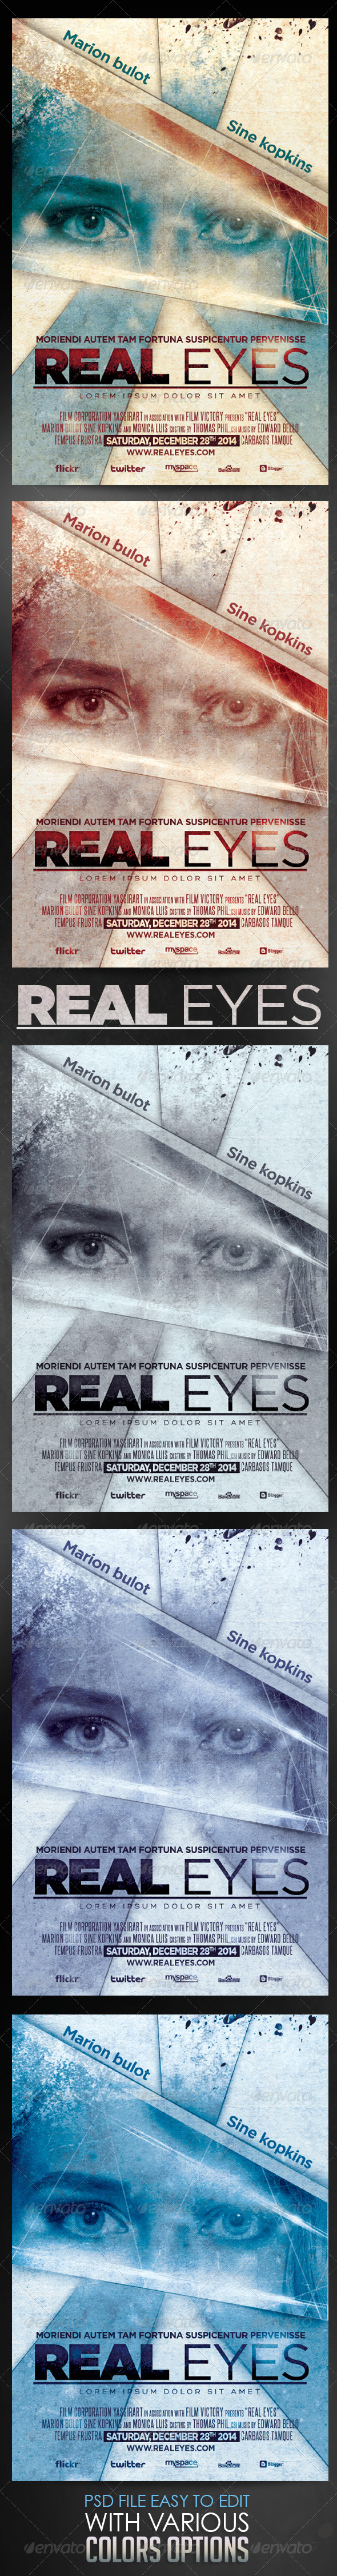 GraphicRiver Real Eyes Film Template 6504177